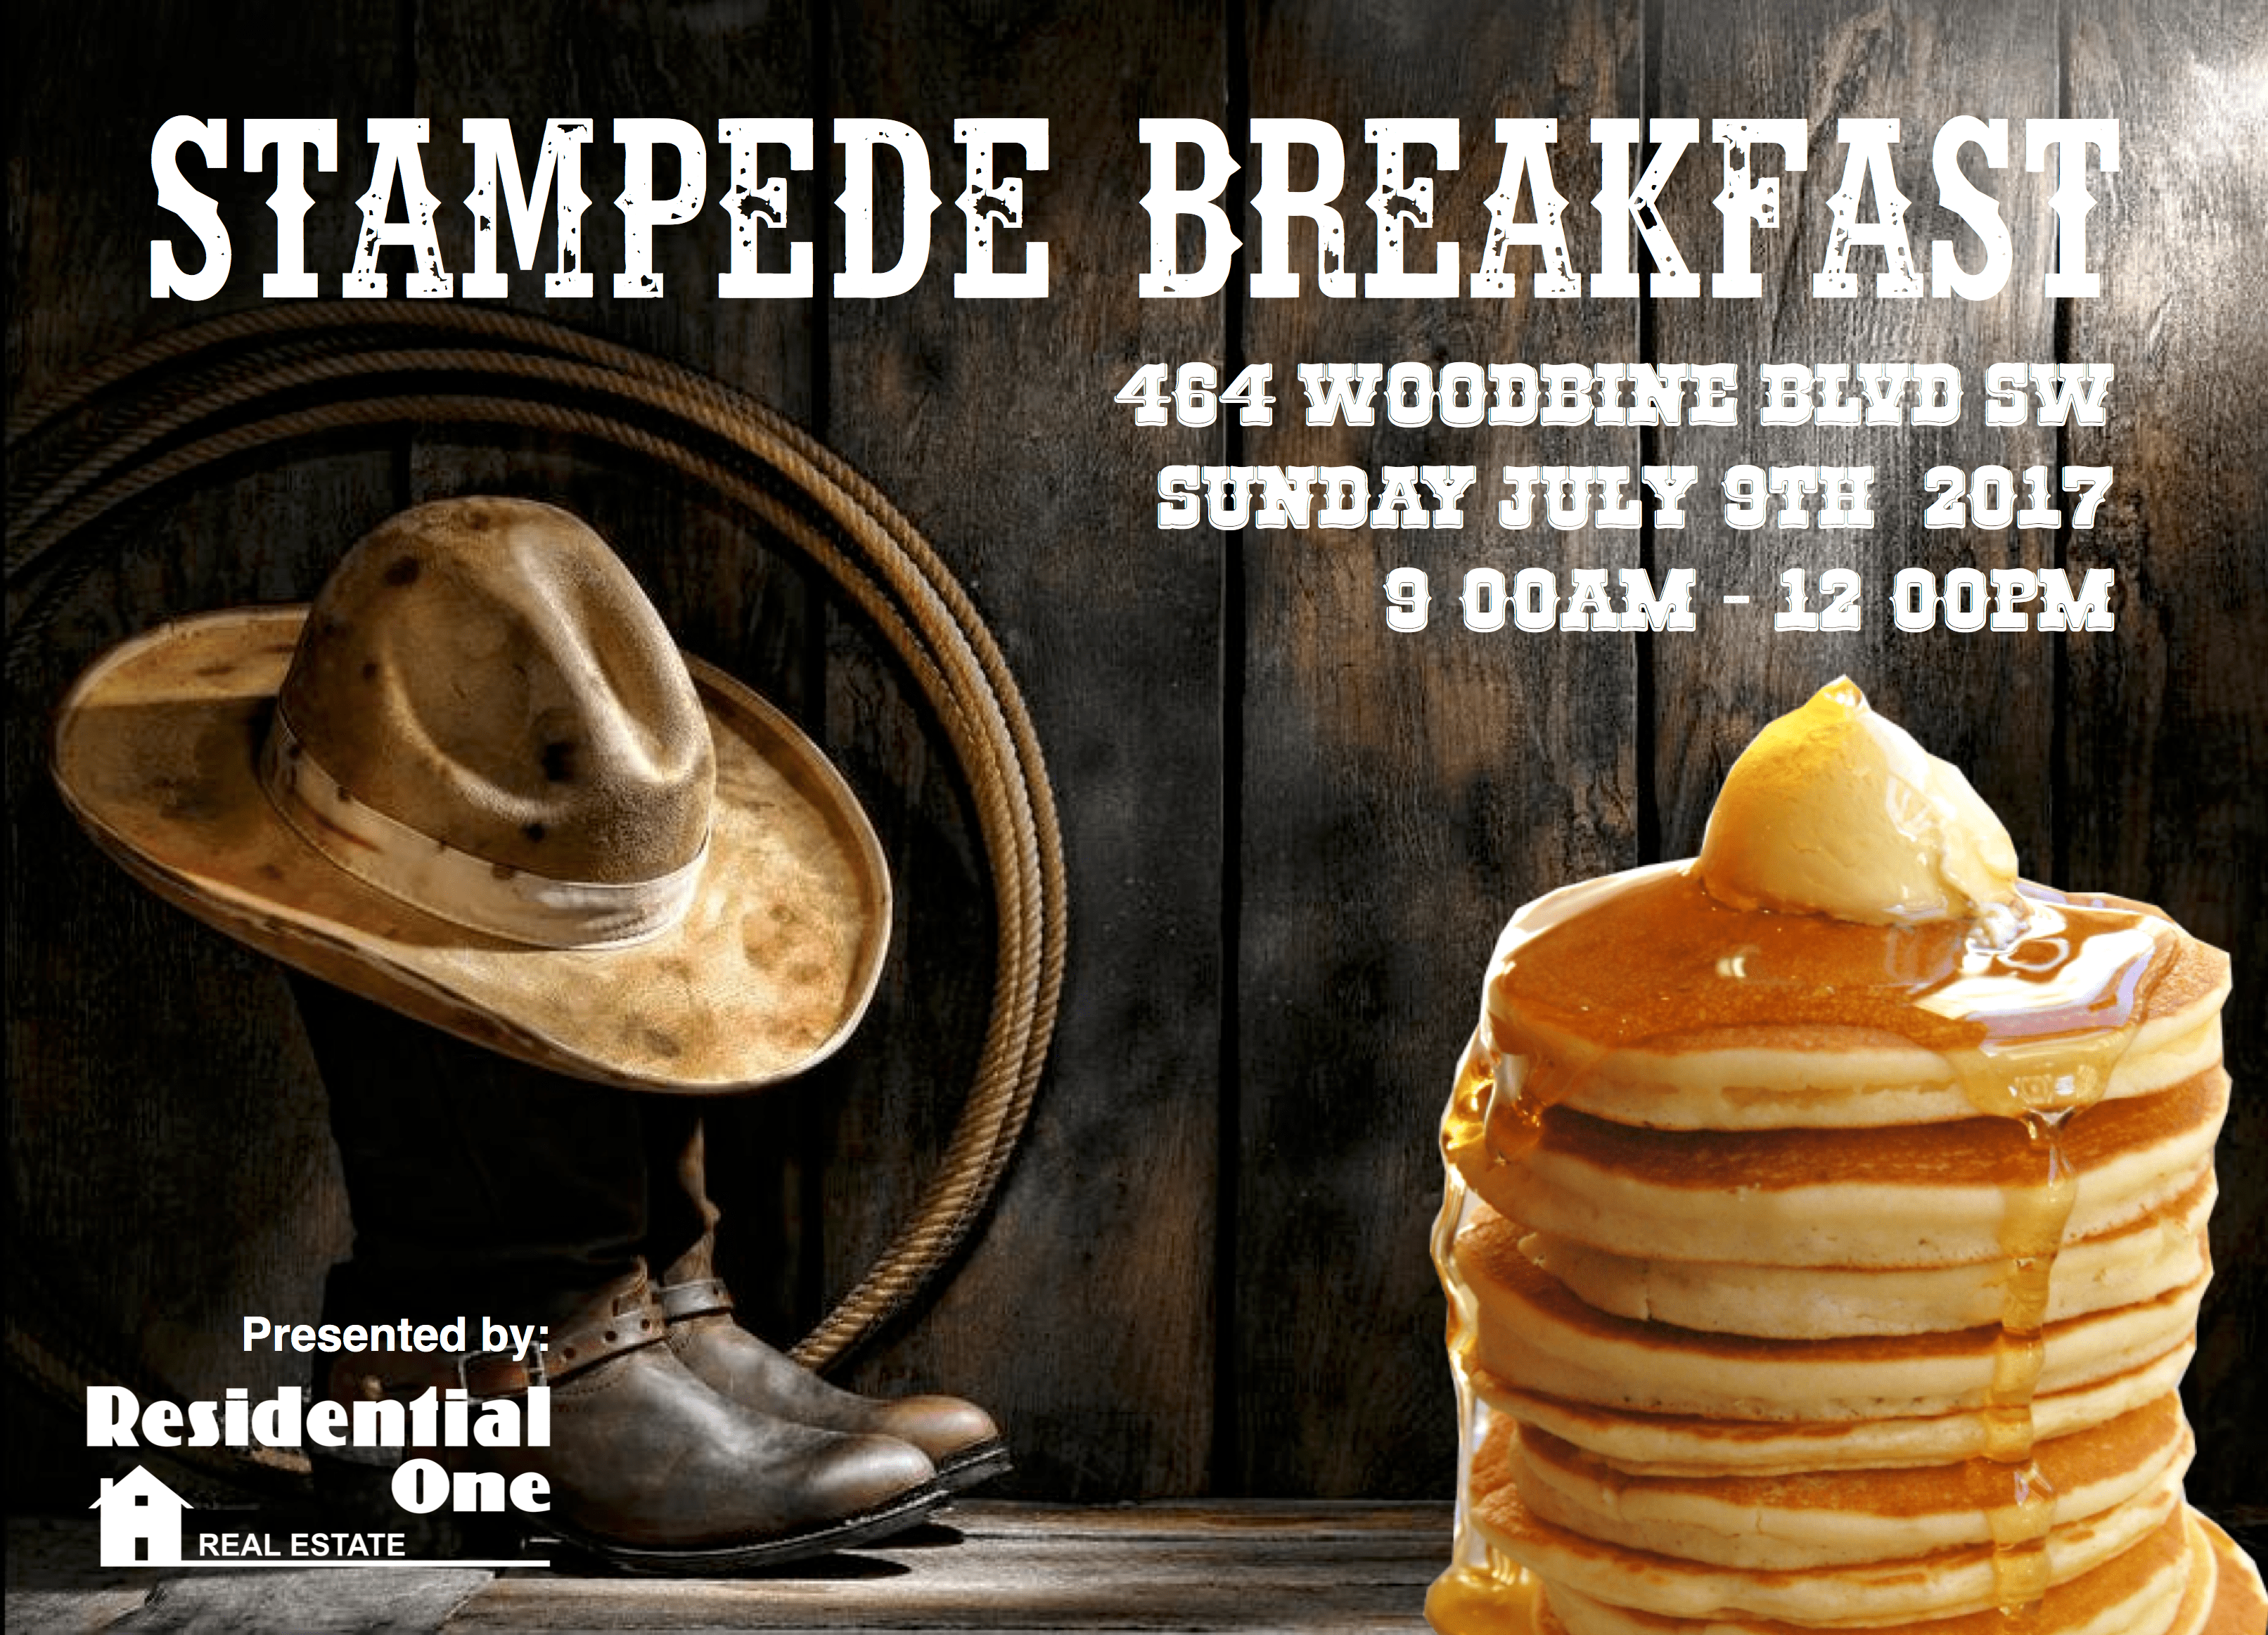 Residential One Stampede Breakfast 2017